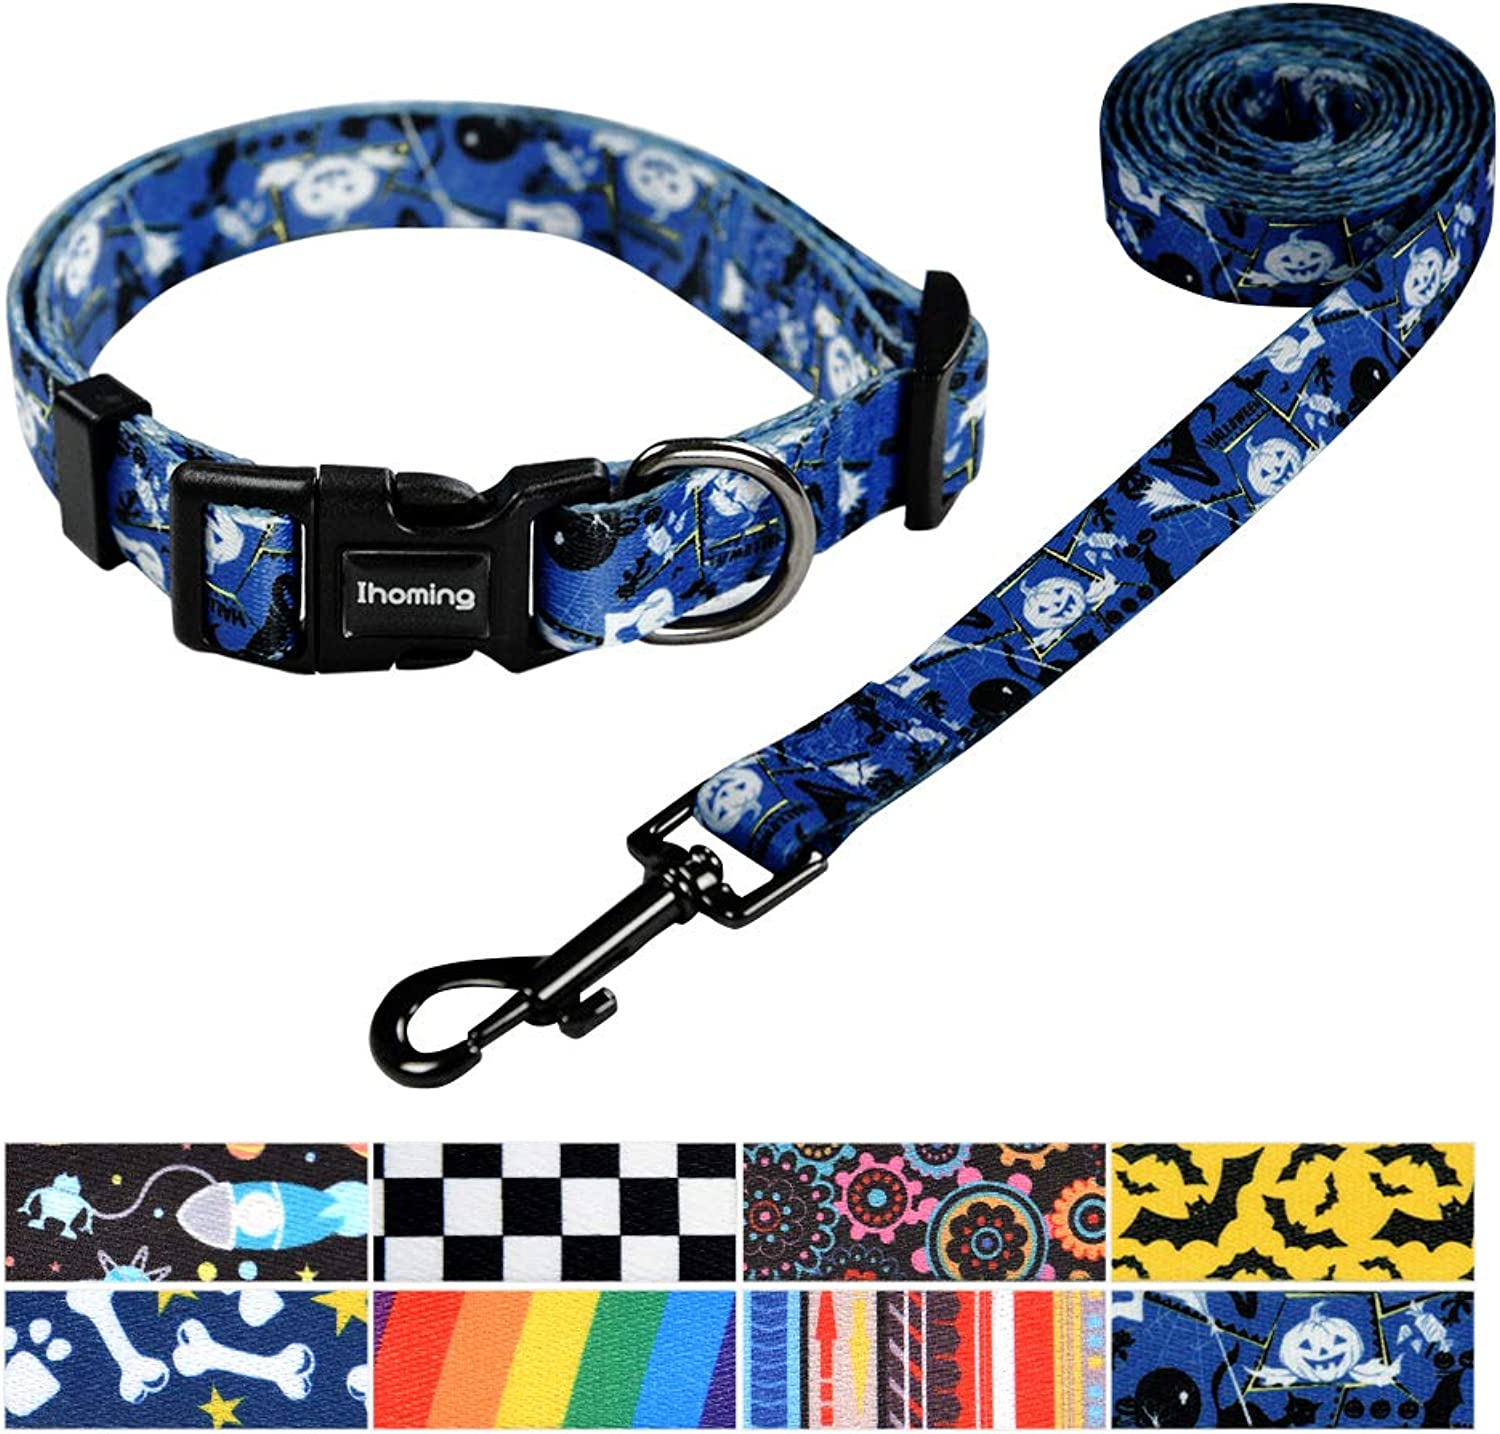 Ihoming Pet Collar Leash Set Halloween Pumpkin Combo Safety Set Daily Outdoor Walking Running Training Small Medium Large Dogs Cats bluee Black White Extra Small